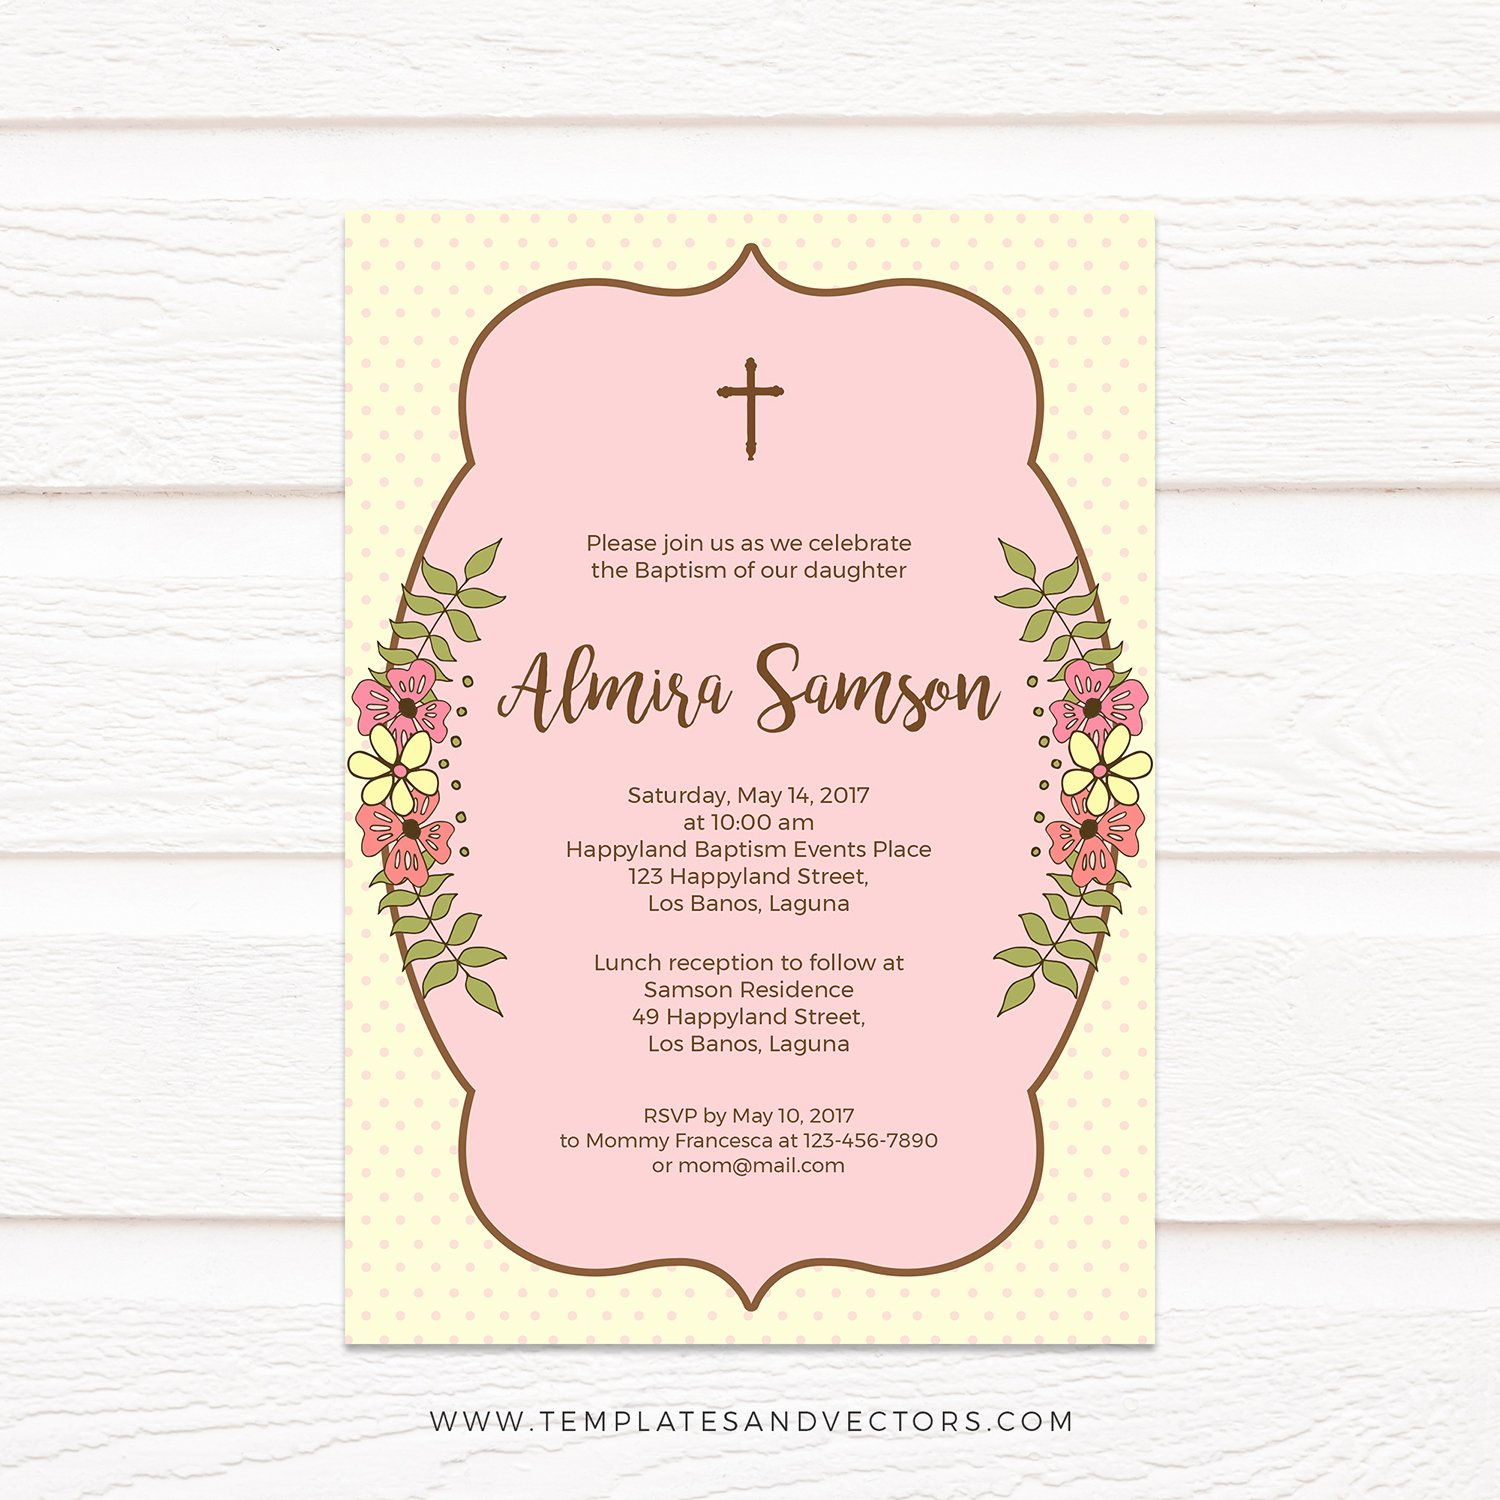 Baptism Invitation Template Microsoft Word Lovely Tvc131 Spring Flowers Baptism Invitation Diy Printable Template